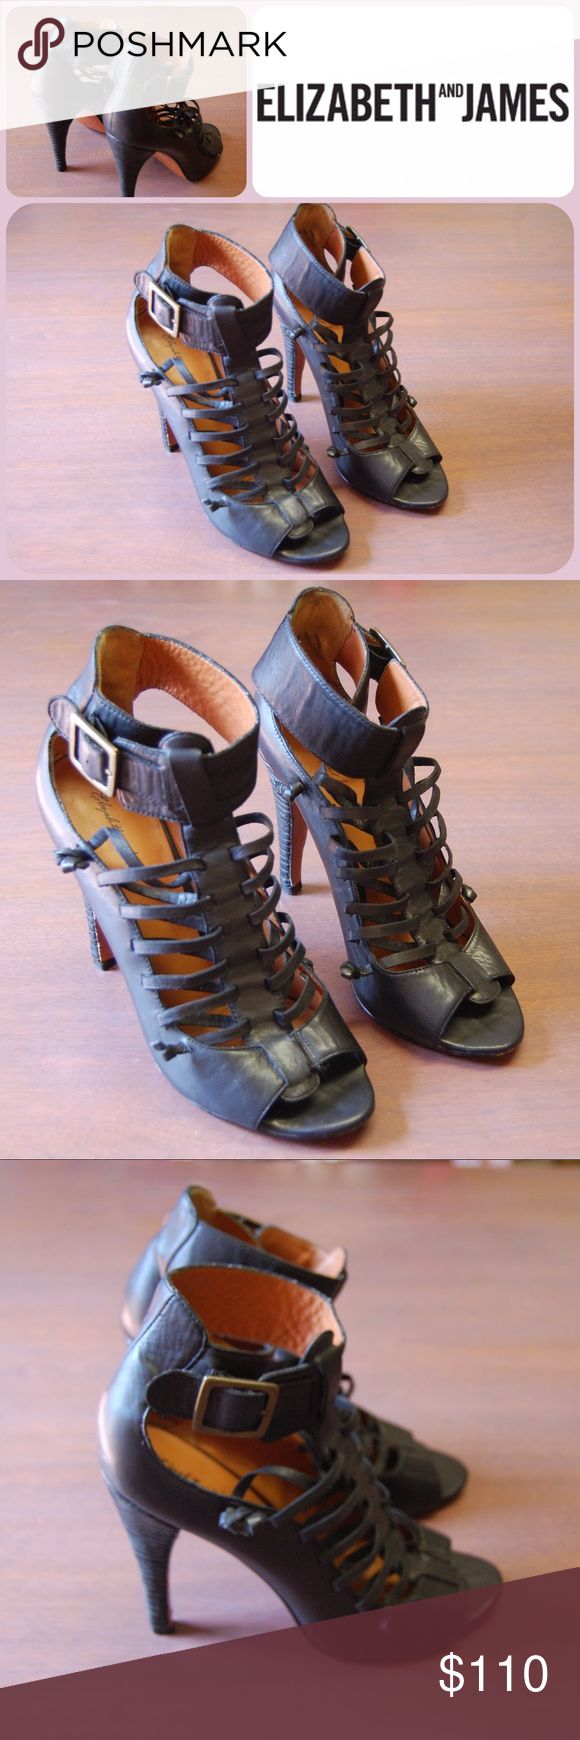 """Luella Caged Gladiator Bootie Heels Elizabeth and James gladiators add such a feeling of power when you put them on. You feel like you can do ANYTHING in the world. They are those kind of shoes. I am not joking. Layered banding across the 4.5"""" heel. Criss cross leather straps lead up to the buckle closure. Some normal wear on the soles, not any tear. Other than the soles, they are pretty perfect. You will feel stronger than Wonder Woman. Sold out at ShopBop & more expensive on other sites…"""